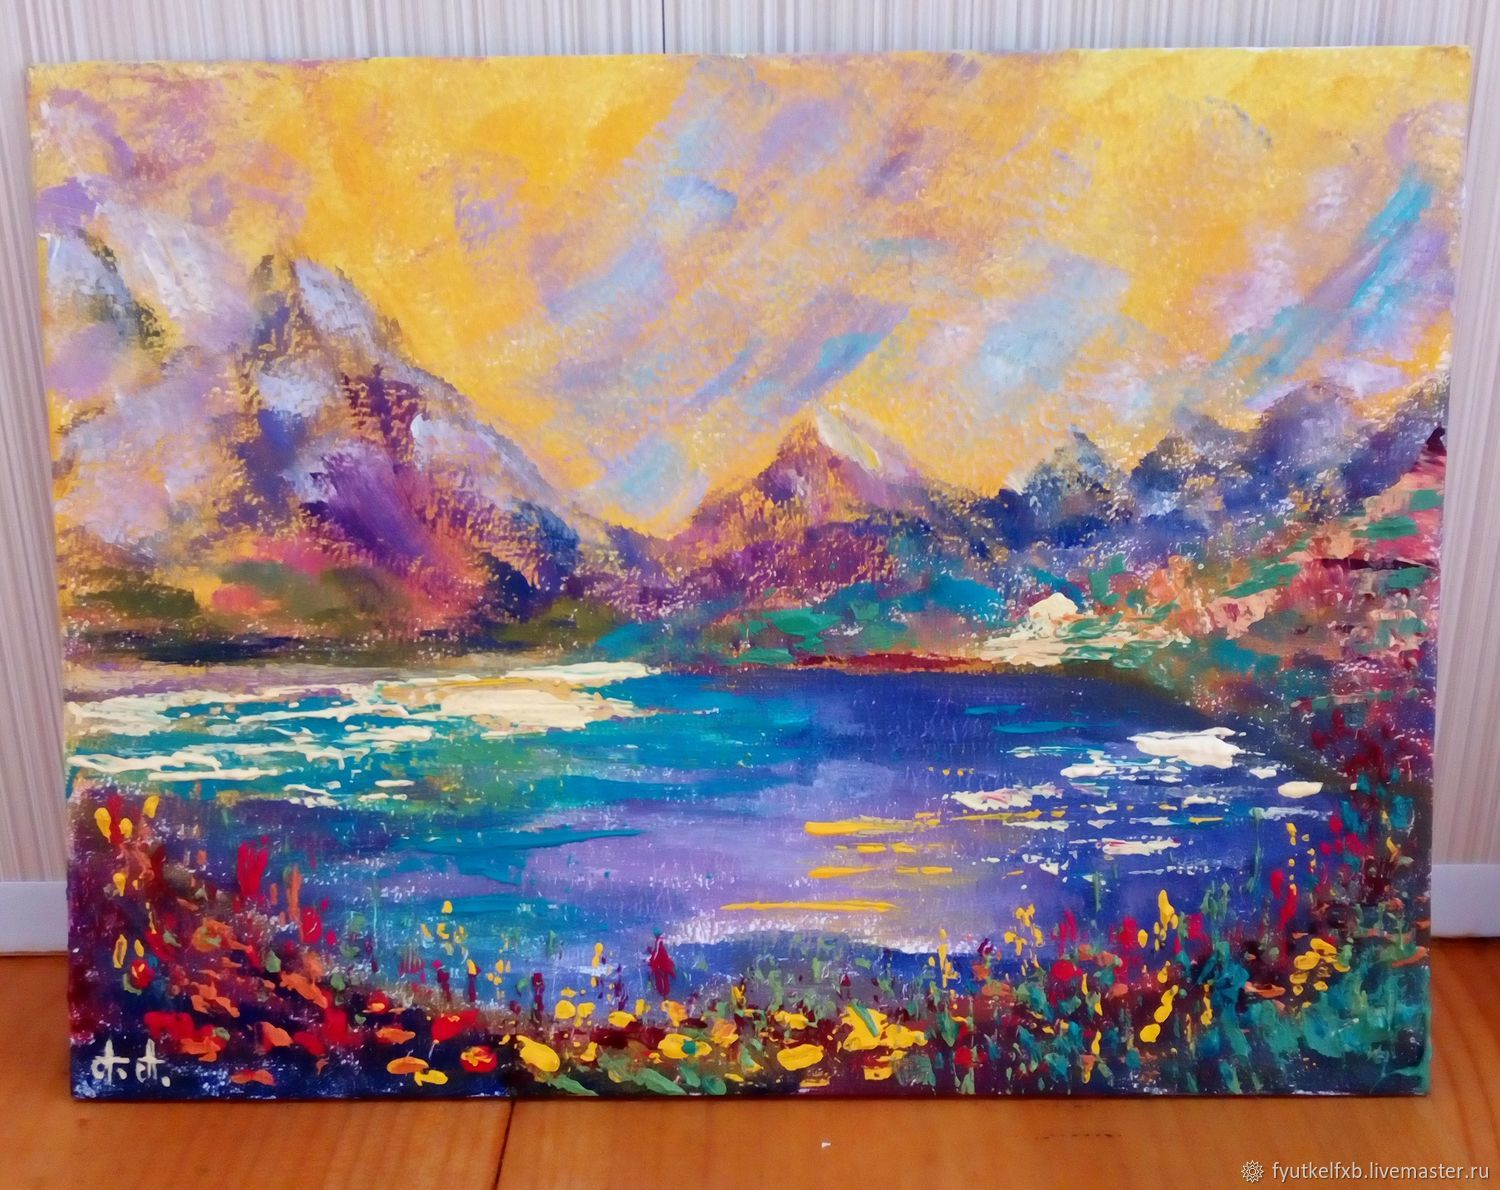 The painting 'Dreams come true' (oil painting miniature 20/15), Pictures, Moscow,  Фото №1